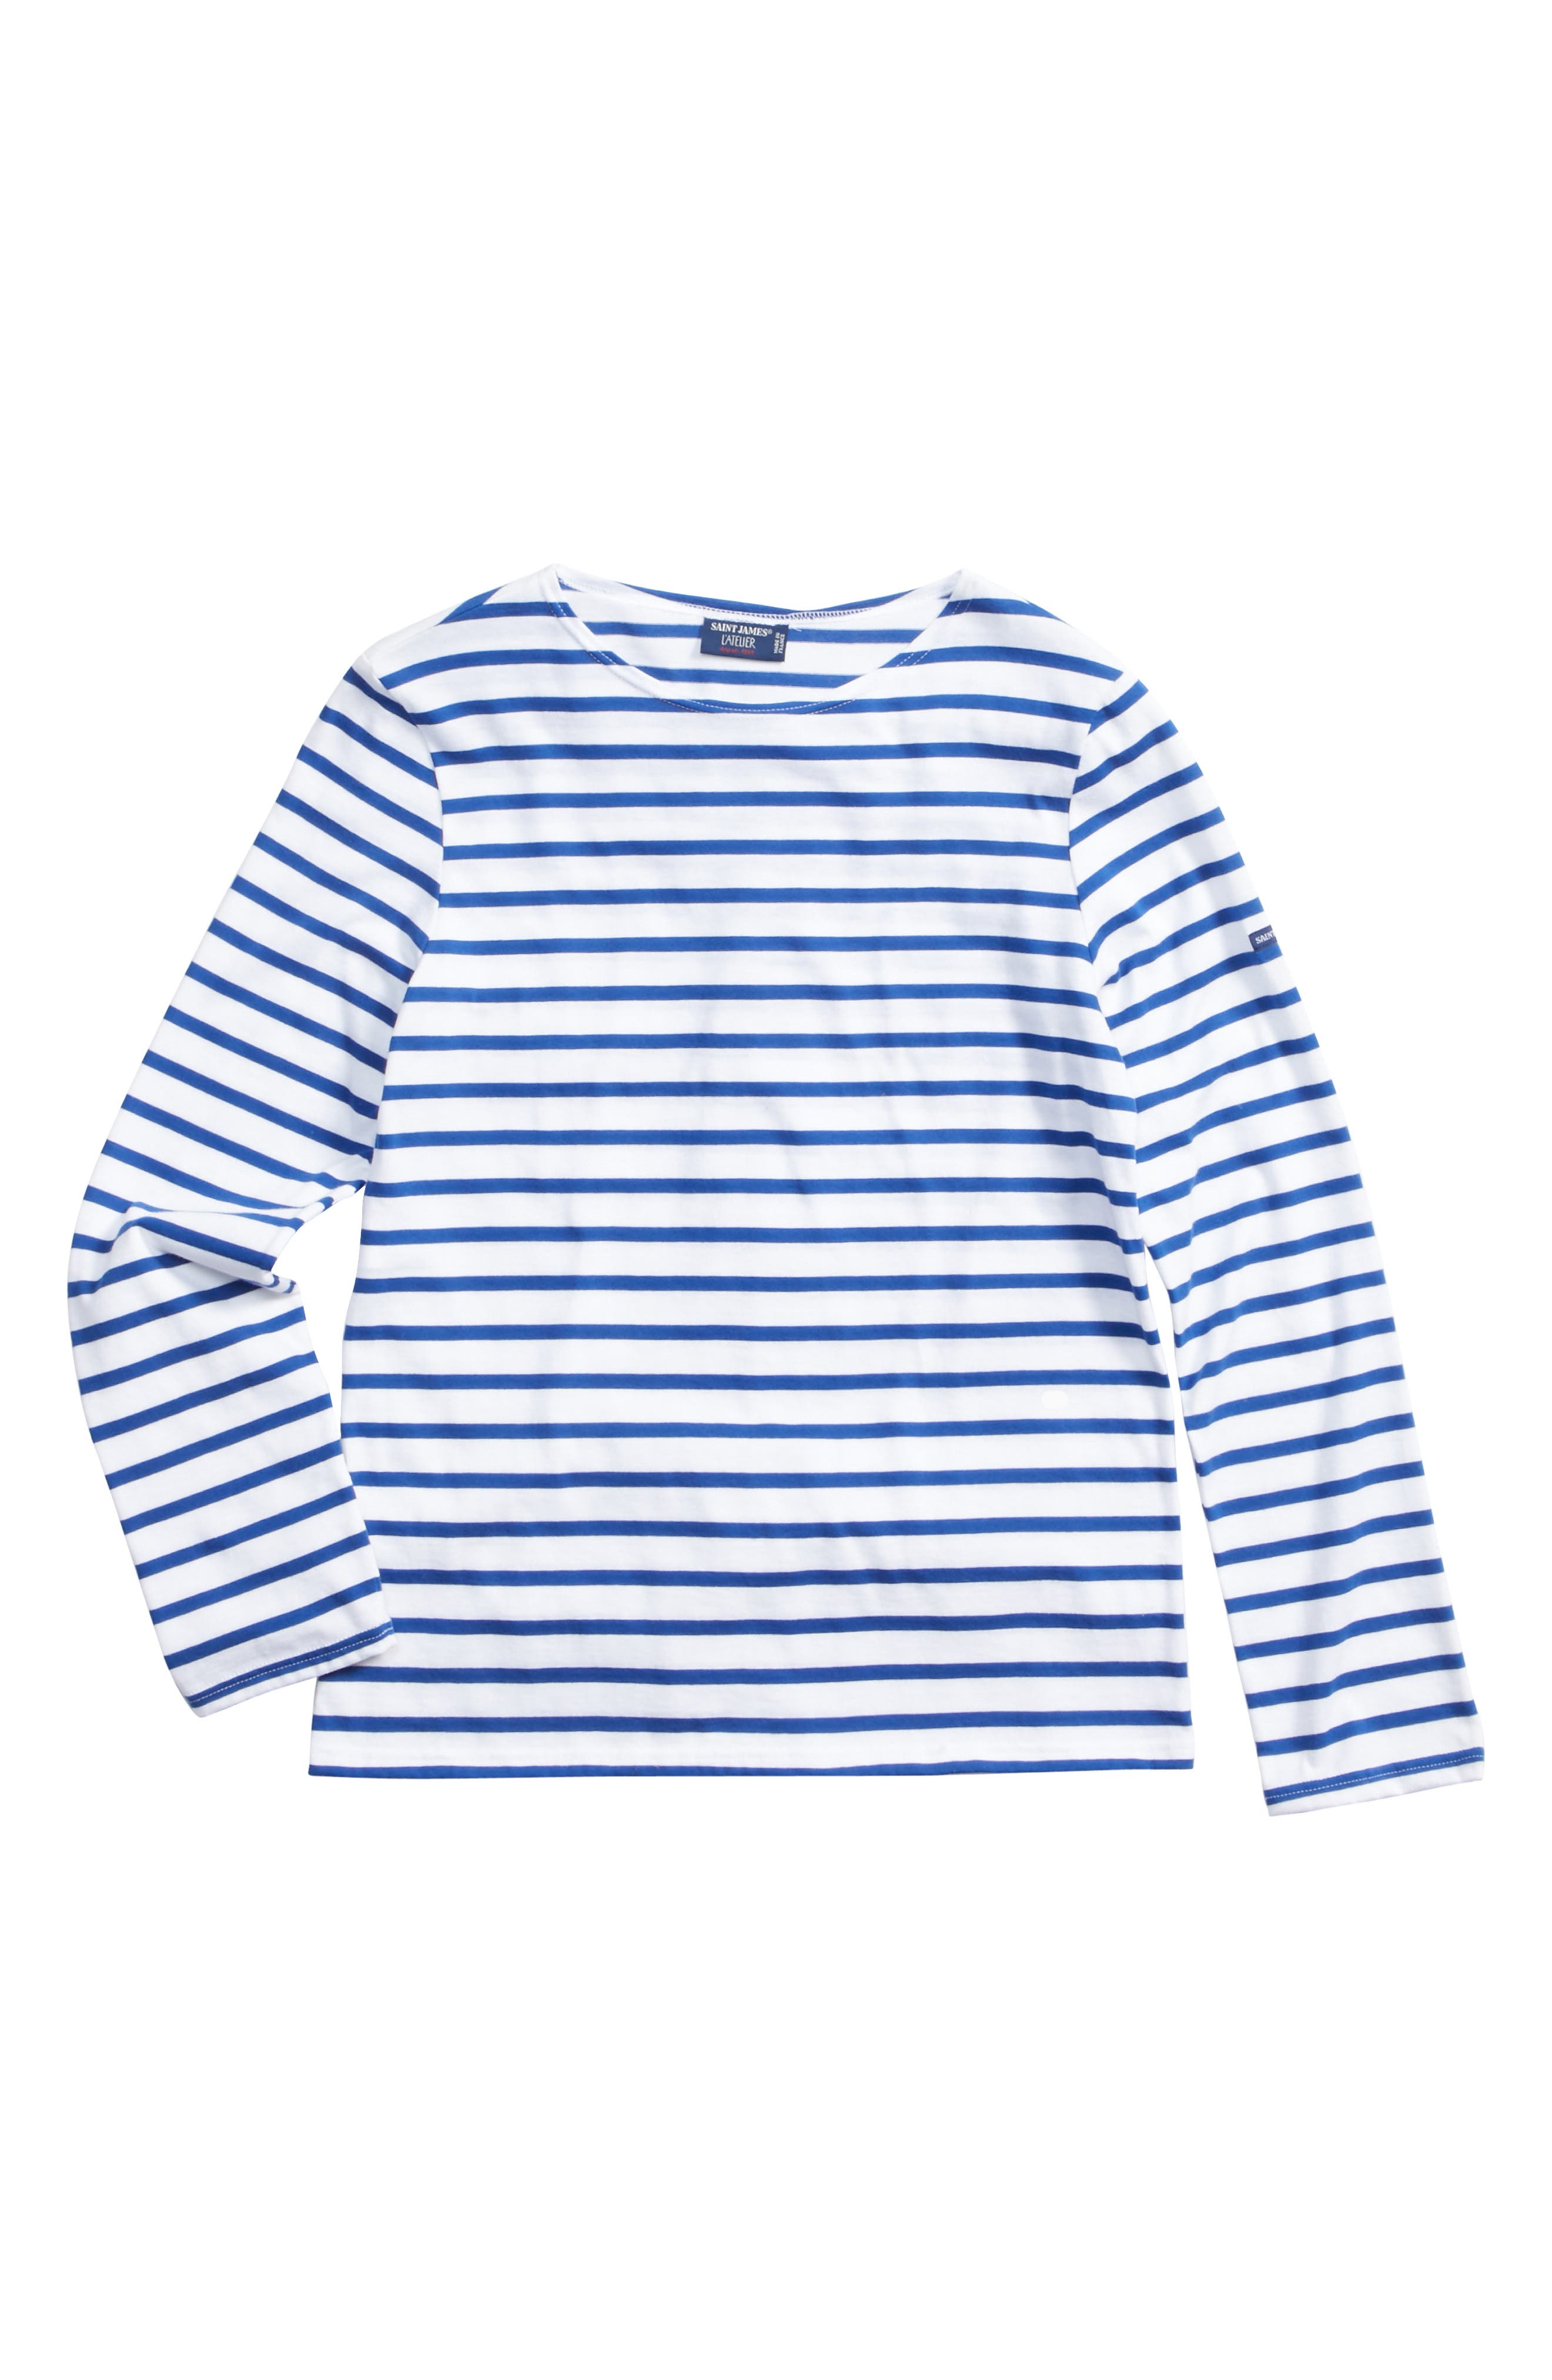 Saint James Minquiers Moderne Striped Sailor Shirt (Unisex)